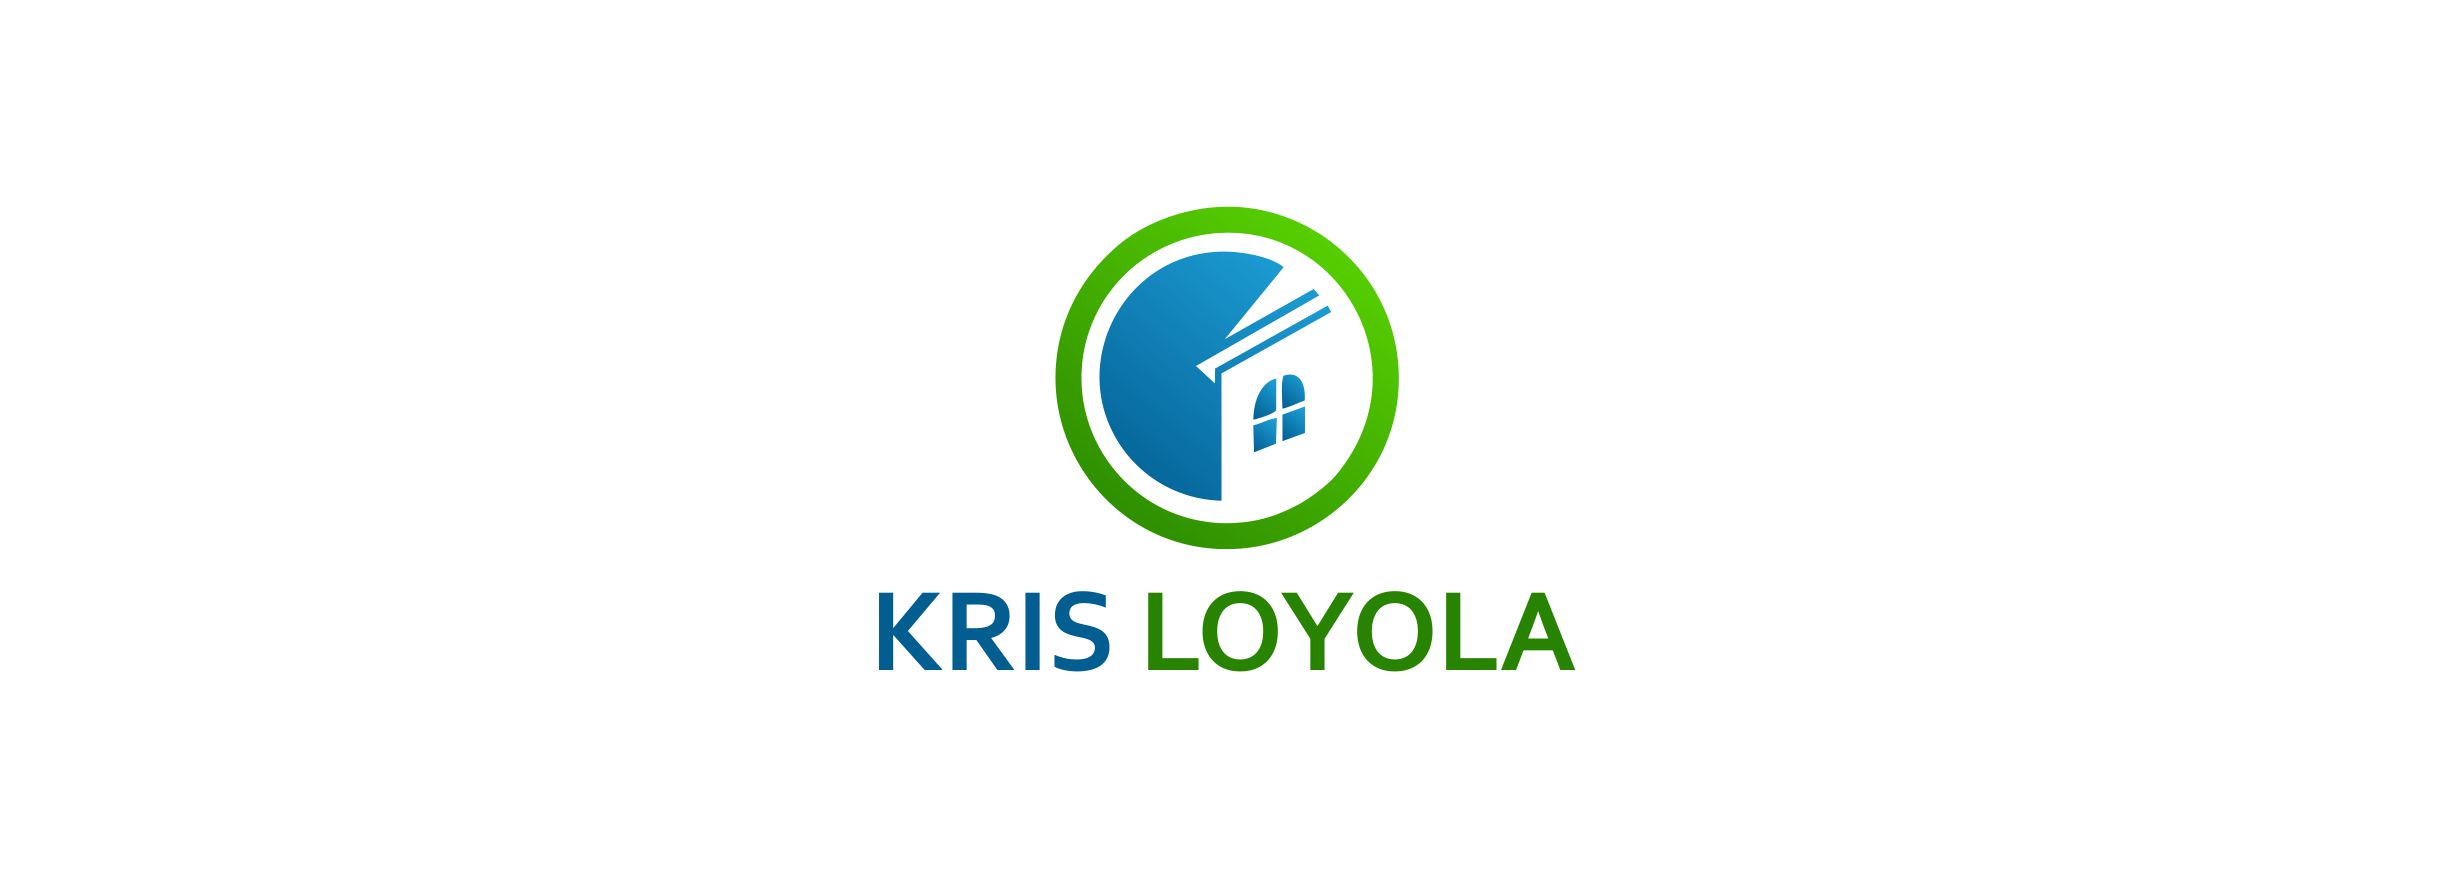 Logo Design by Muhammad Aslam - Entry No. 32 in the Logo Design Contest Kris Loyola Logo Design.